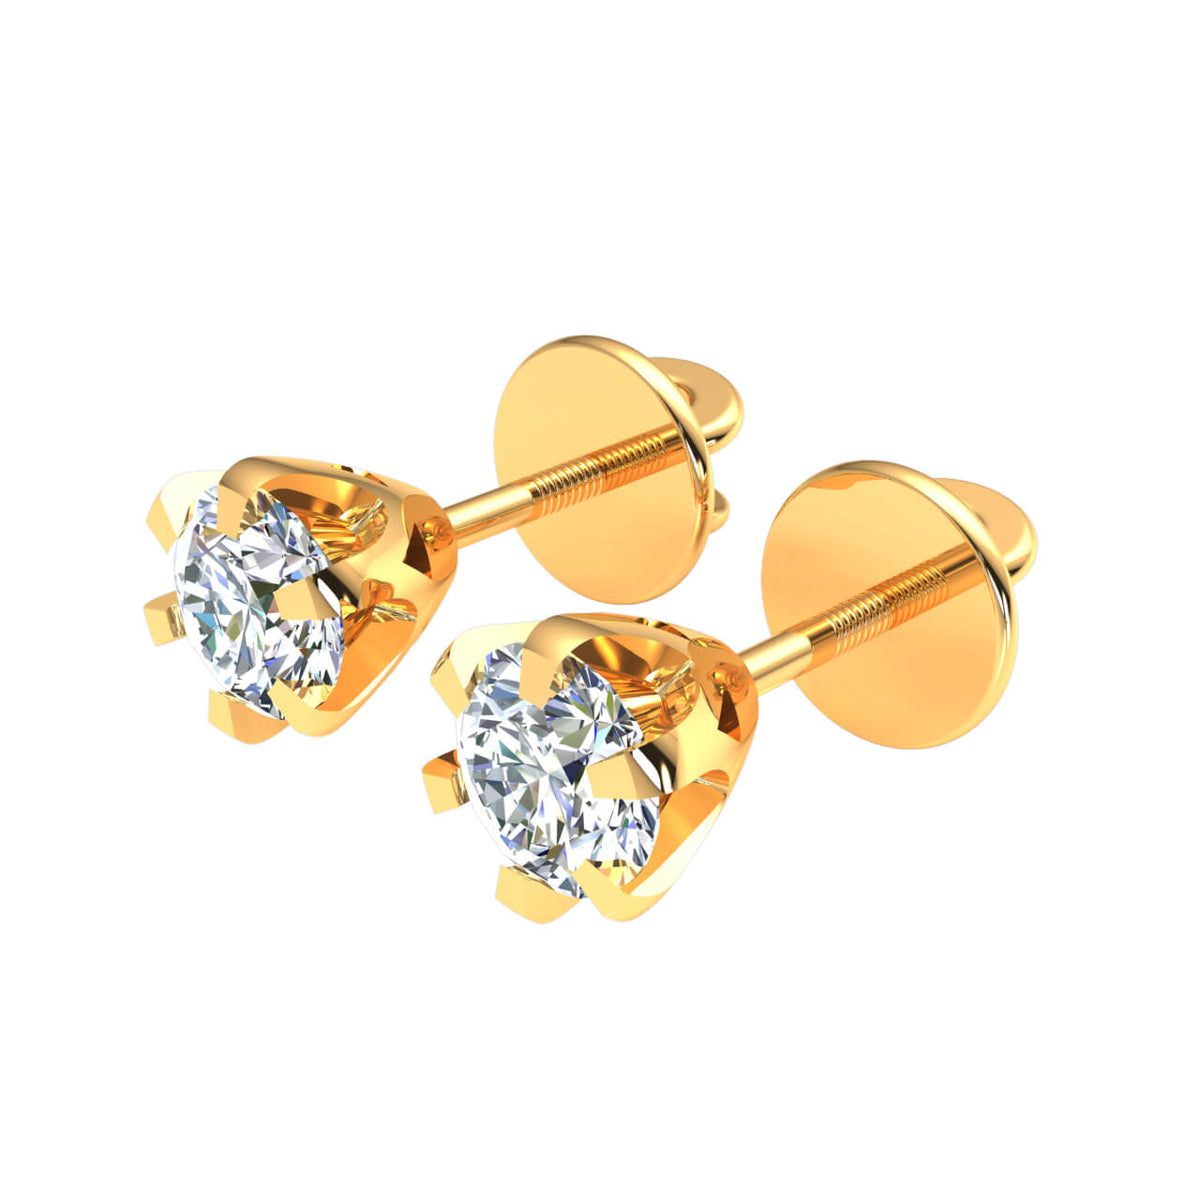 1.00 Ct Round GH SI1 Diamond 6-Prong Solitaire Unisex Stud Earrings 14k Gold